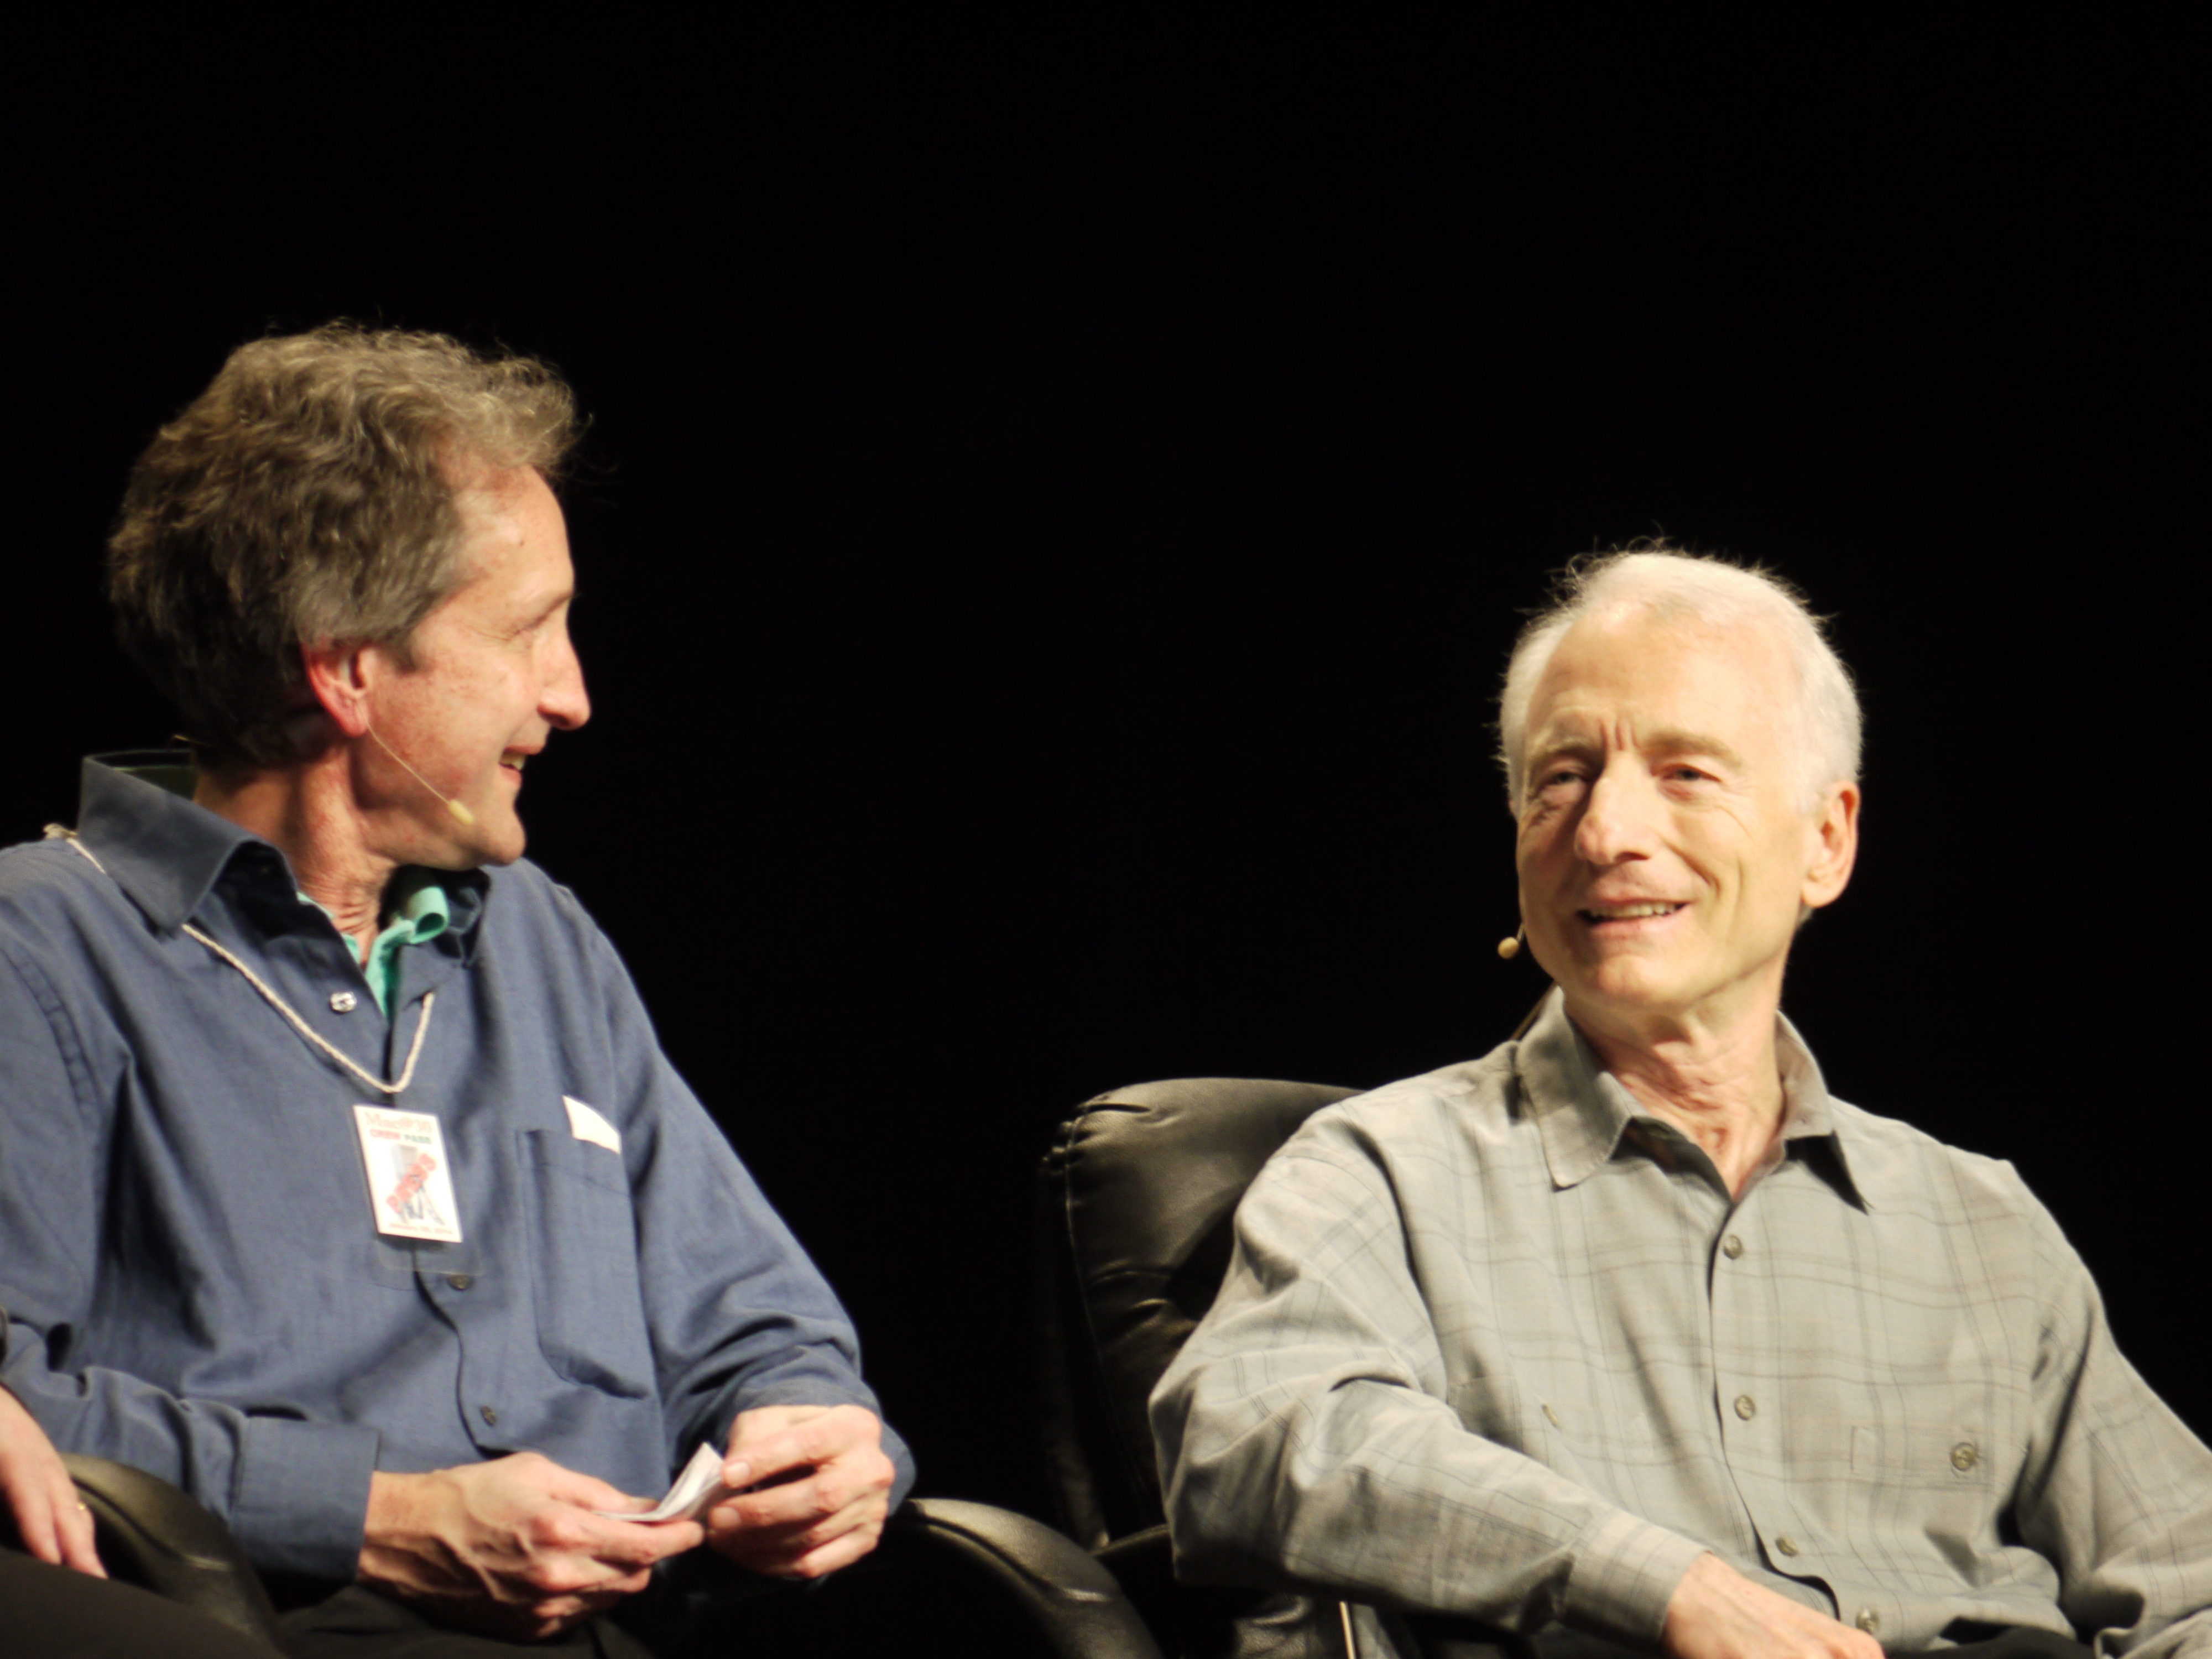 Daniel Kottke and Larry Tesler